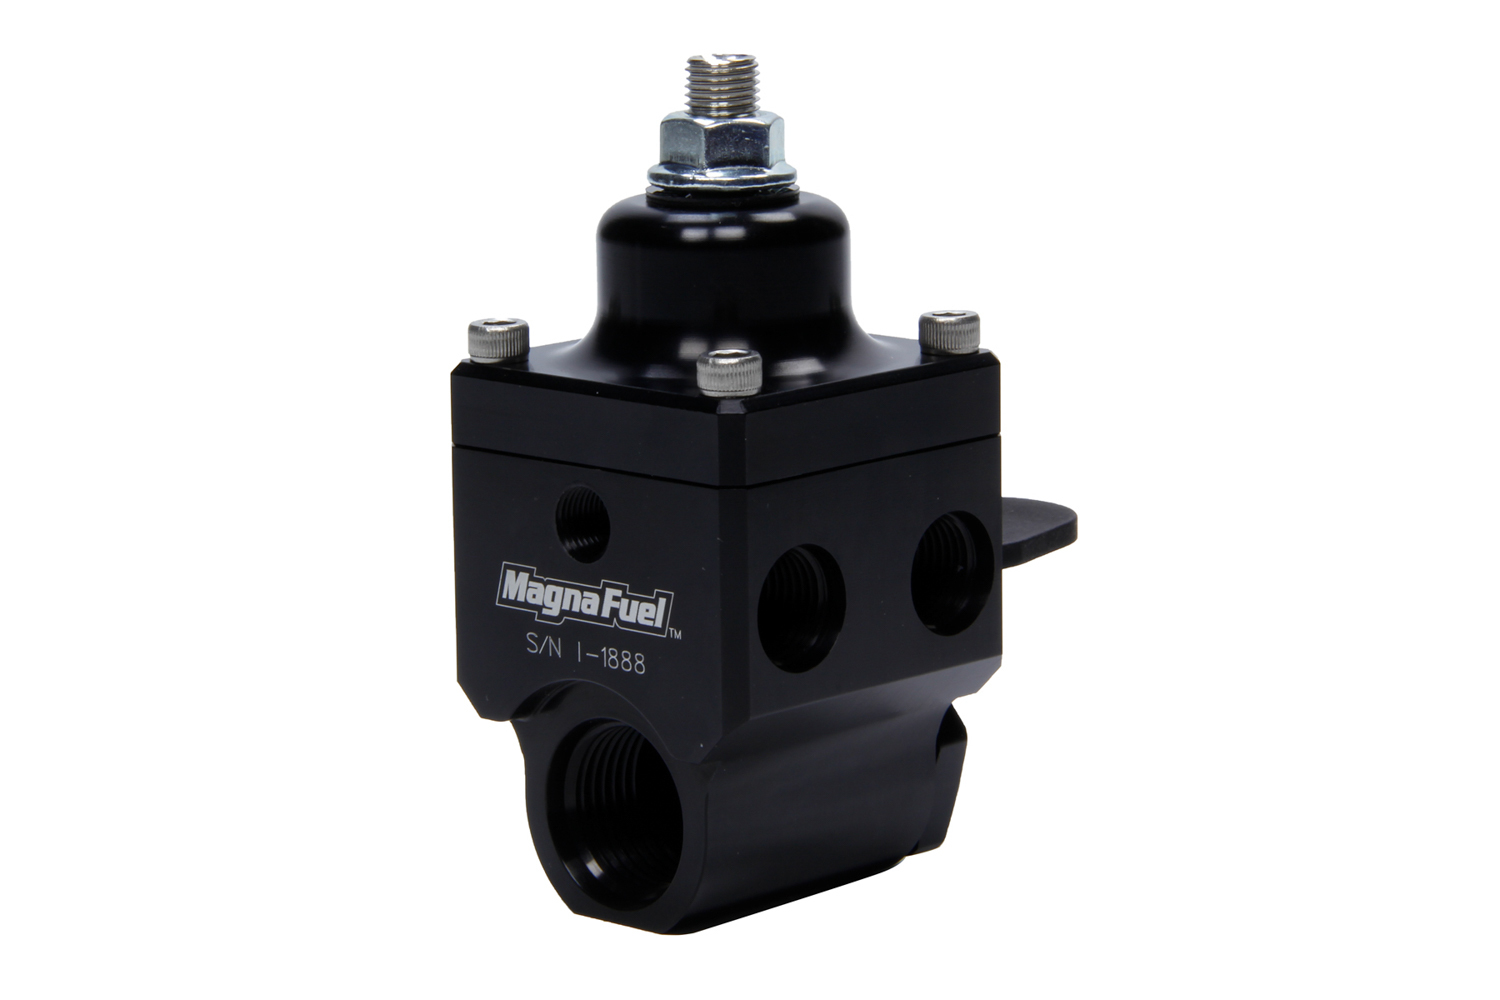 Magnafuel MP-9450-BLK Fuel Pressure Regulator, 4 to 12 psi, In-Line, 10 AN O-Ring Inlet, Four 6 AN O-Ring Outlets, 1/8 in NPT Port, Aluminum, Black, E85 / Gas / Methanol, Each